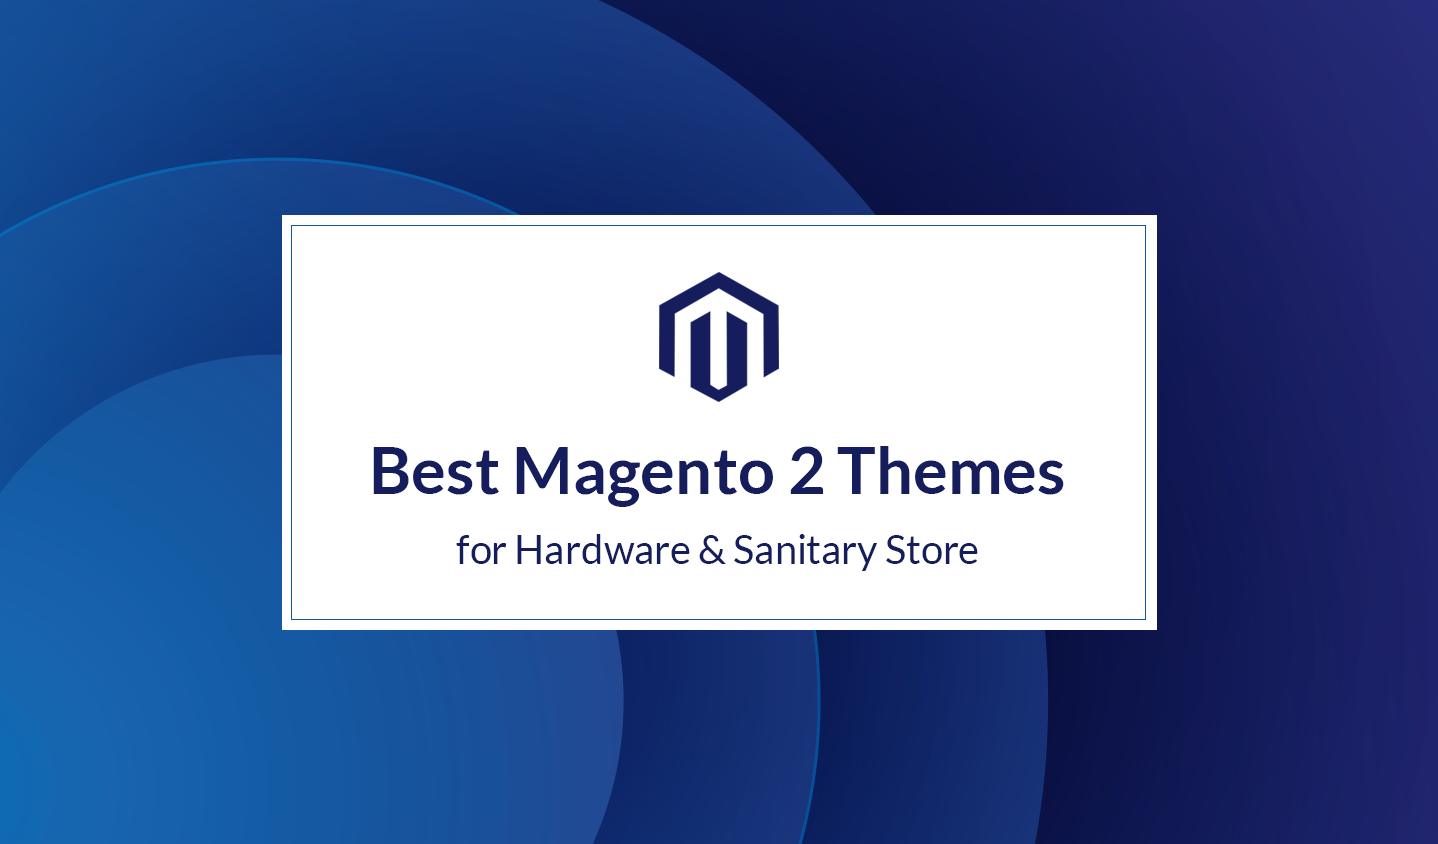 Best Hardware & Sanitary Magento 2 Themes